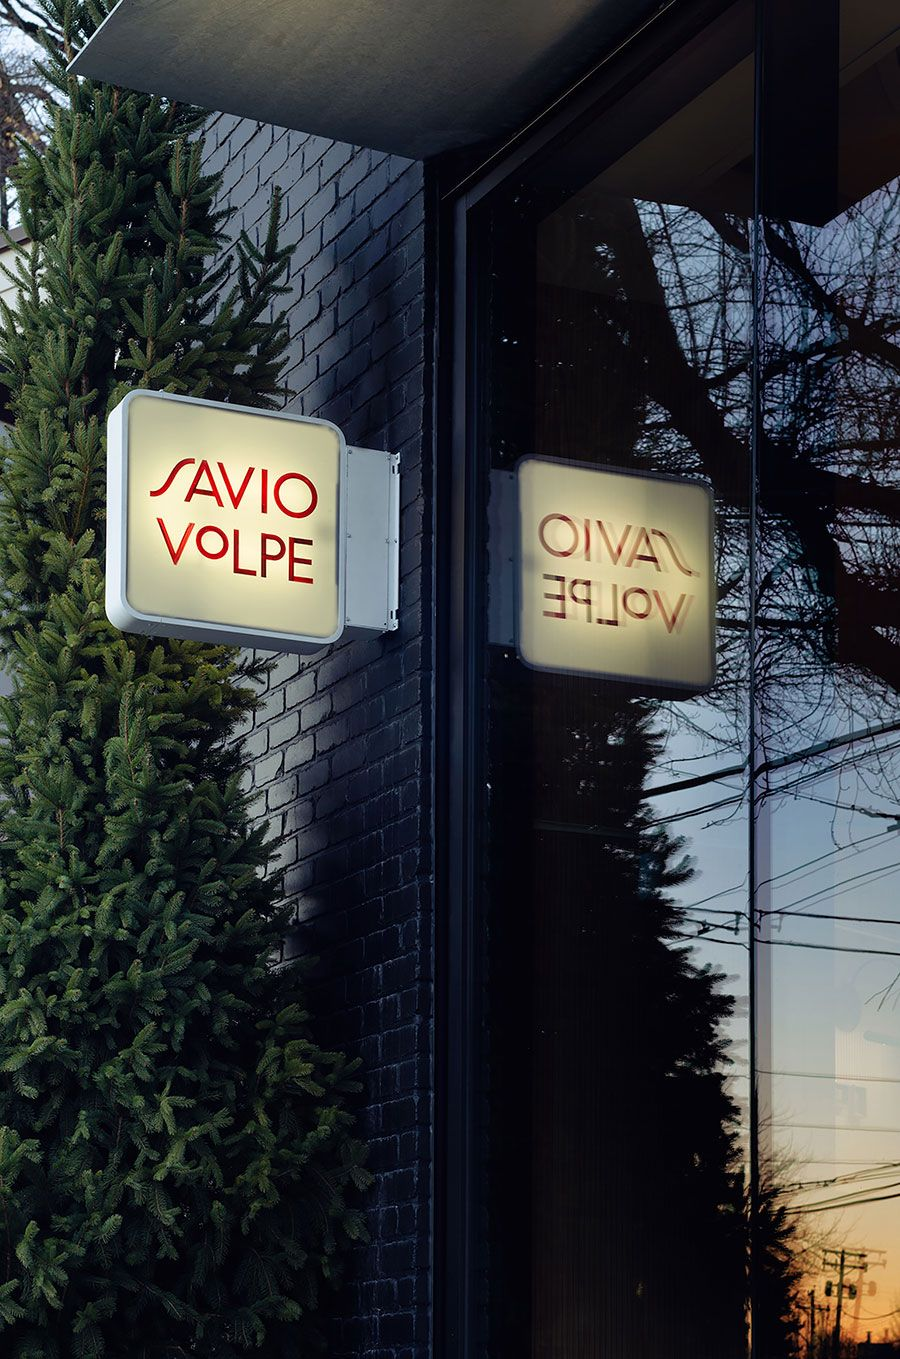 Savio Volpe: The Wise Fox's Osteria in Vancouver by Studio